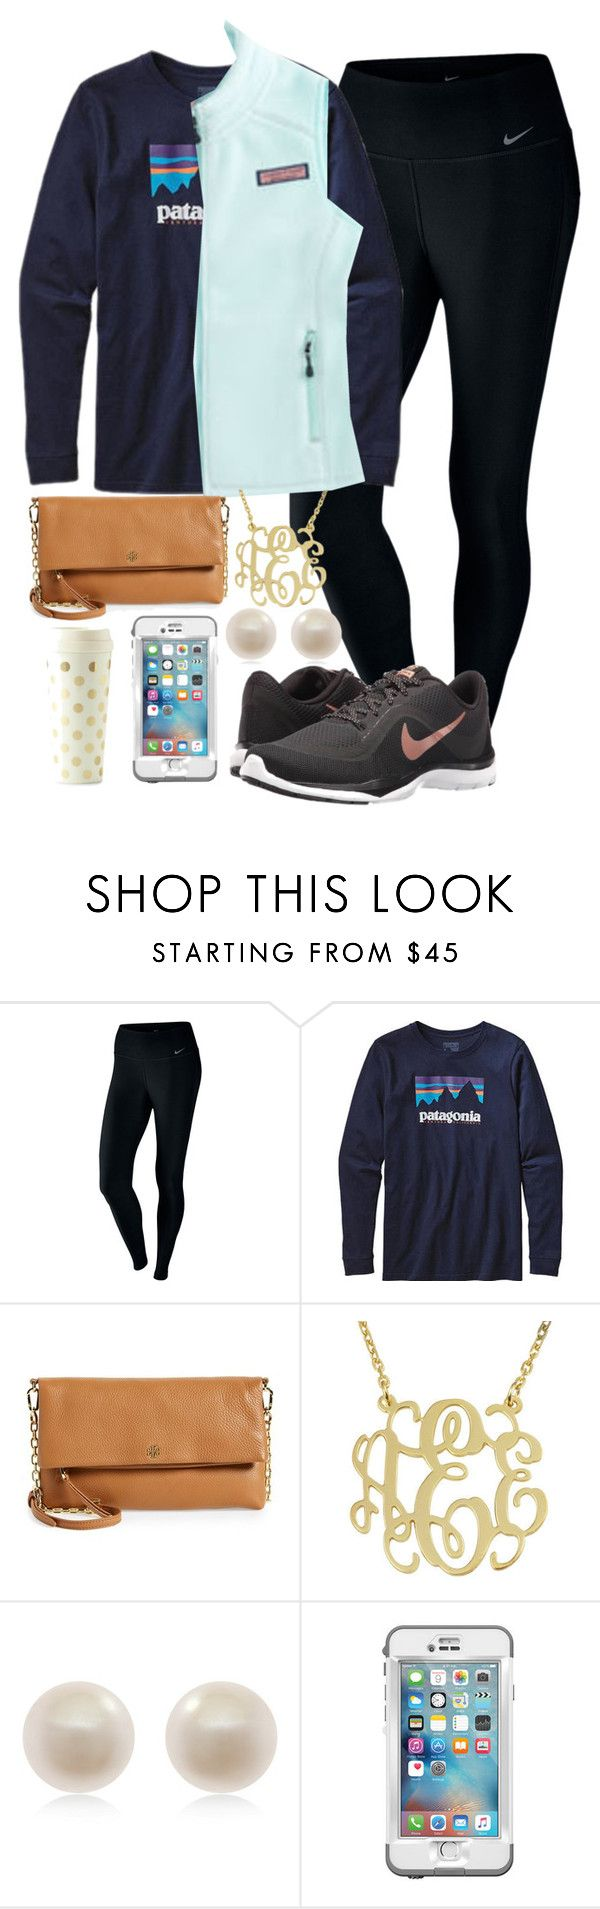 """""""I may have to work during Thanksgiving dinner but I can still shop Black Friday"""" by carolinaprep137 ❤ liked on Polyvore featuring NIKE, Patagonia, Vineyard Vines, Tory Burch, Links of London, LifeProof and Kate Spade"""